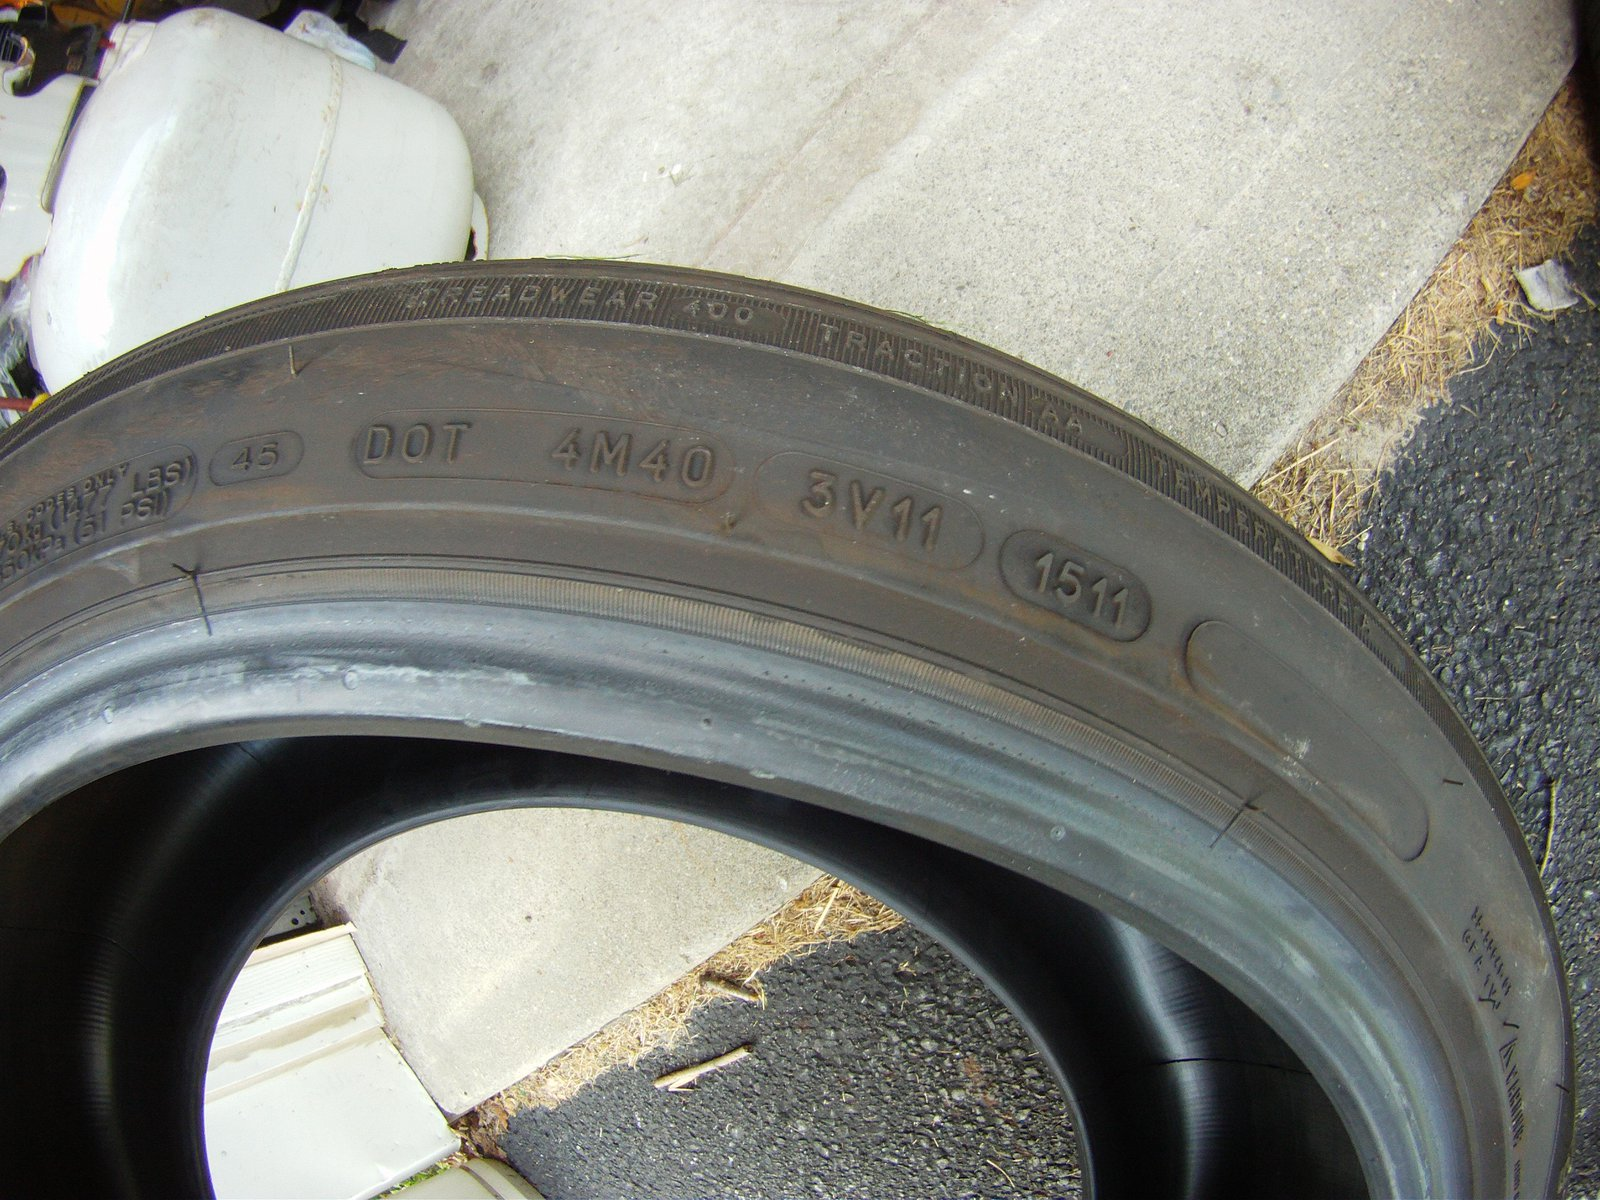 Tires - 2 of 7